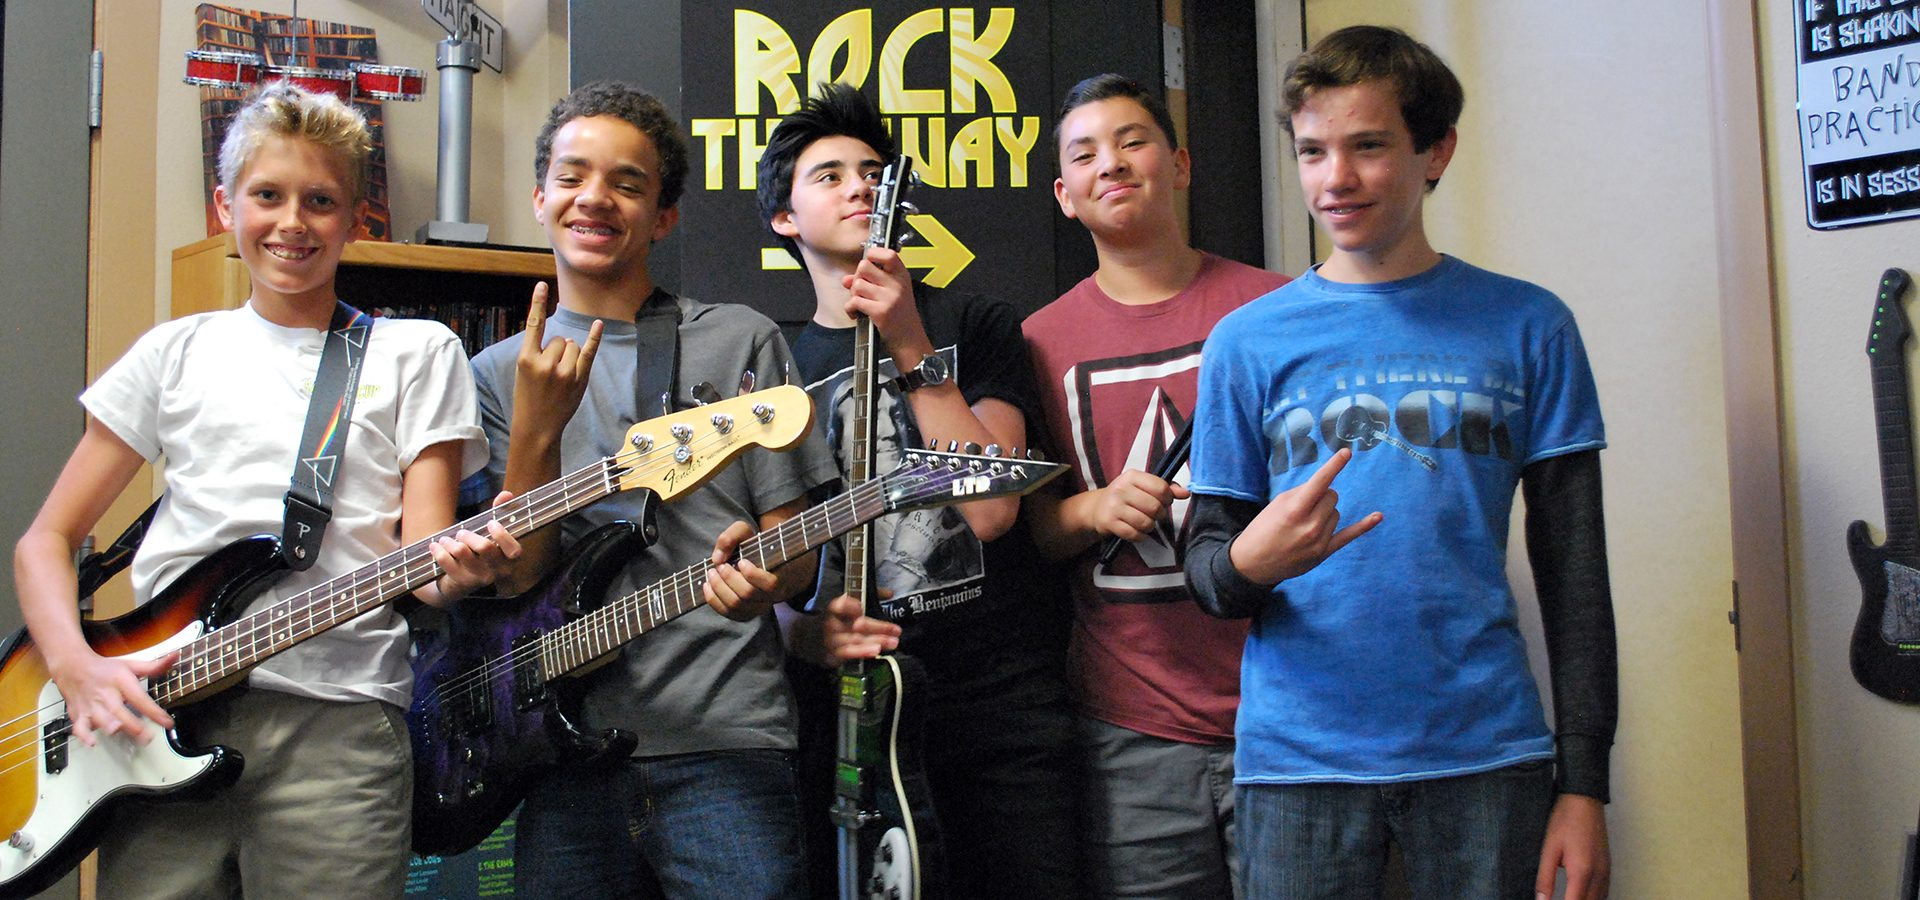 Rock Band Music Camp - Boys Band - Sherman Oaks, Los Angeles - Join The Band